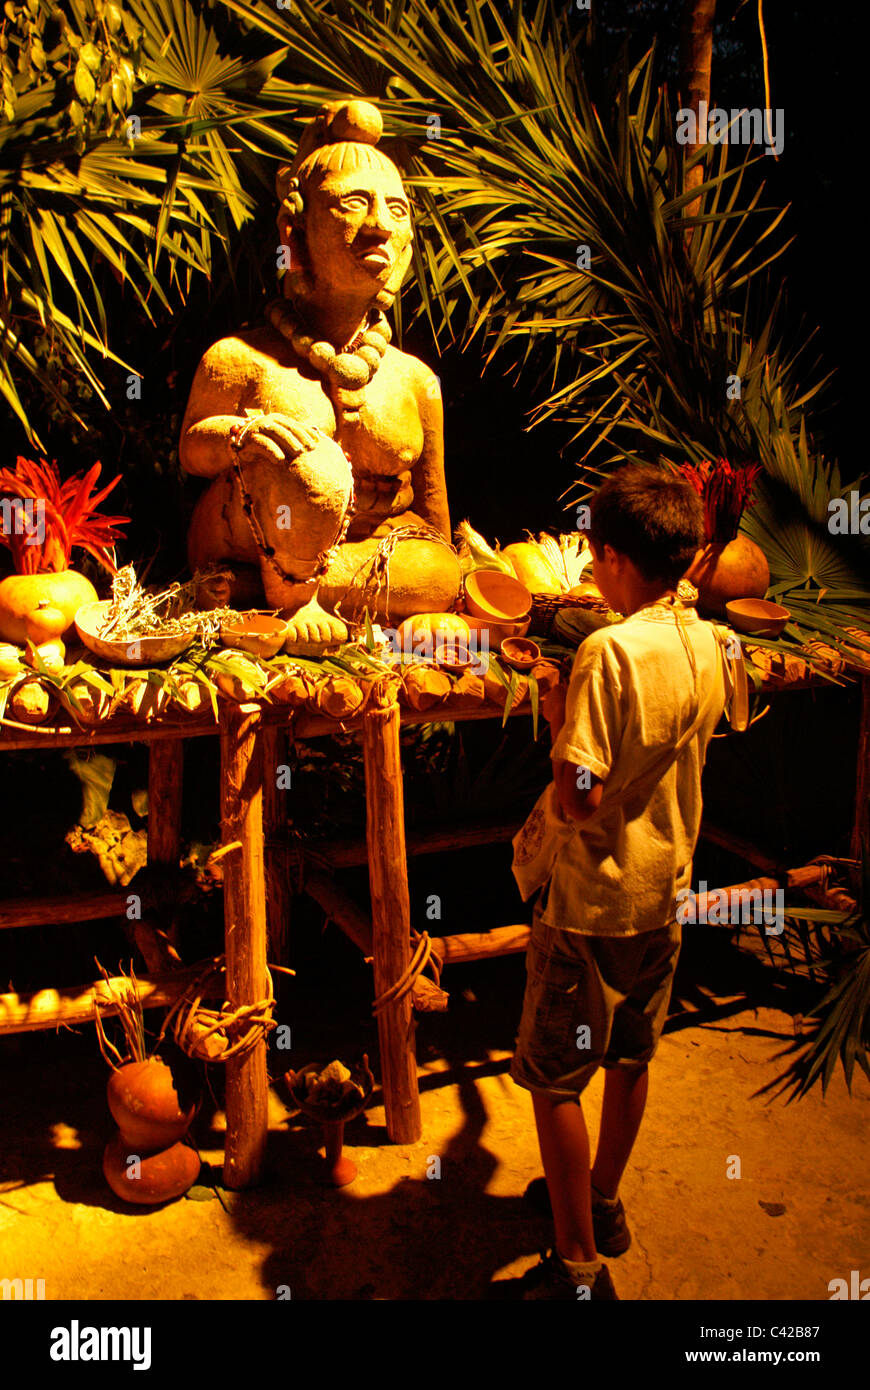 Mexican boy looking at Ssatue of Ixchel, a Mayan fertility and moon goddess, surrounded by offerings, Xcaret park, - Stock Image